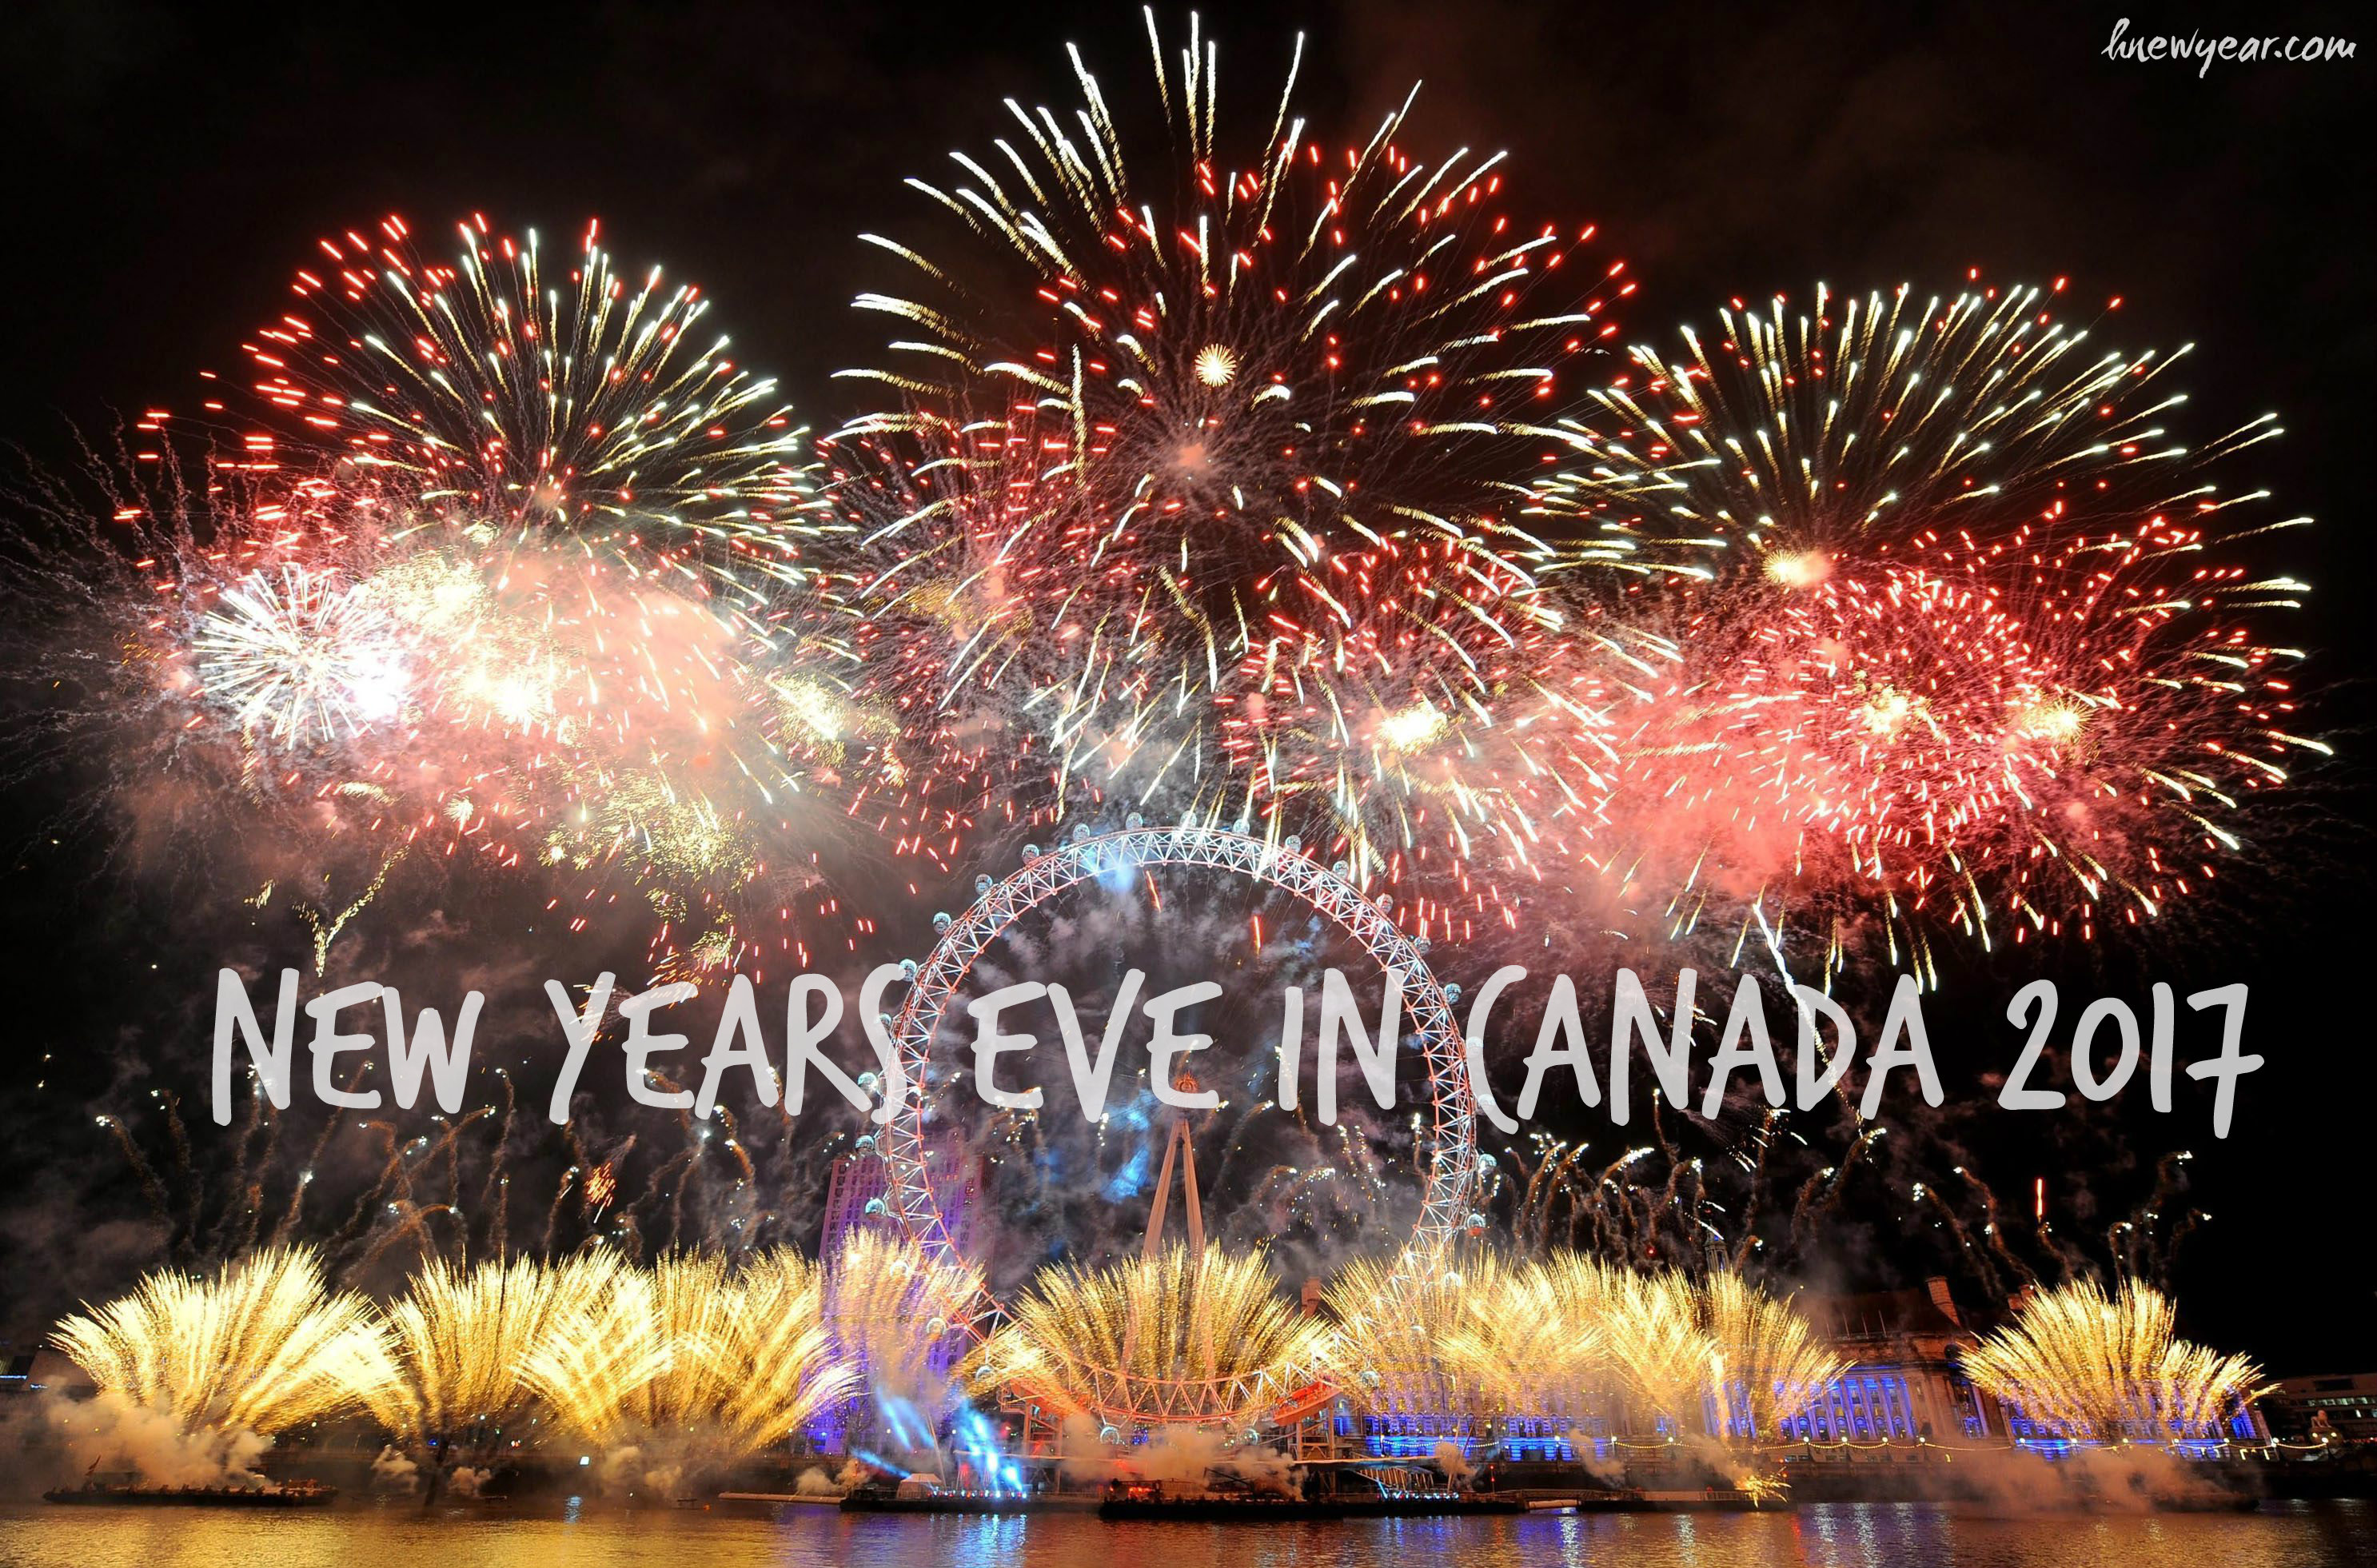 new years eve in canada 2017